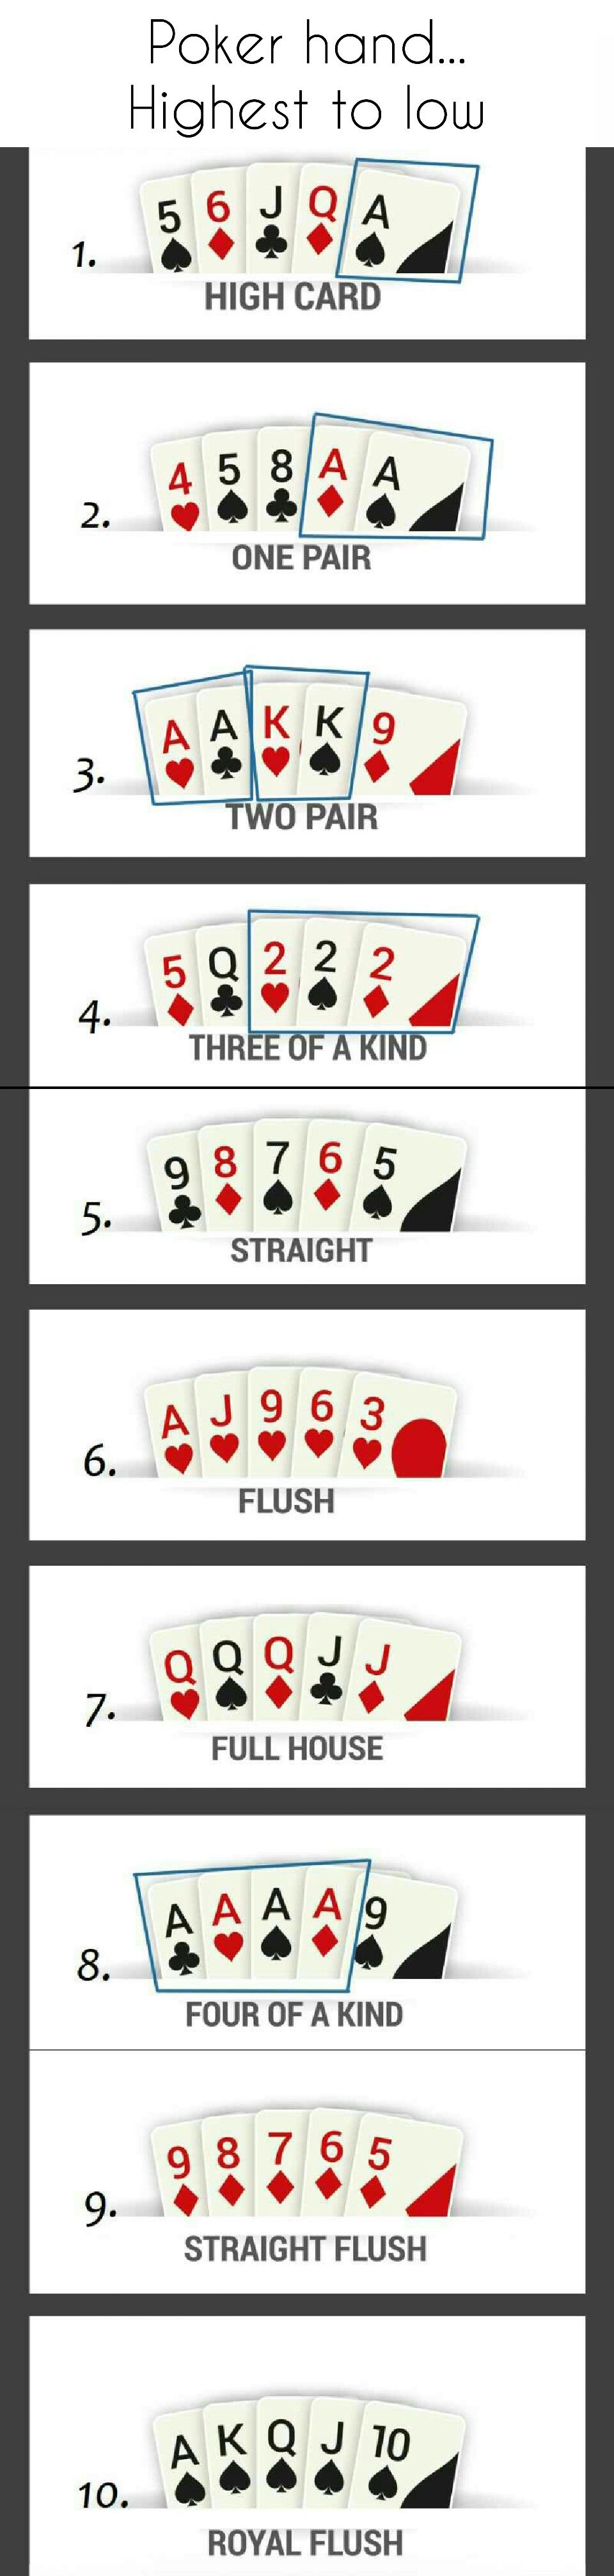 Poker Hands Highest To Lowest